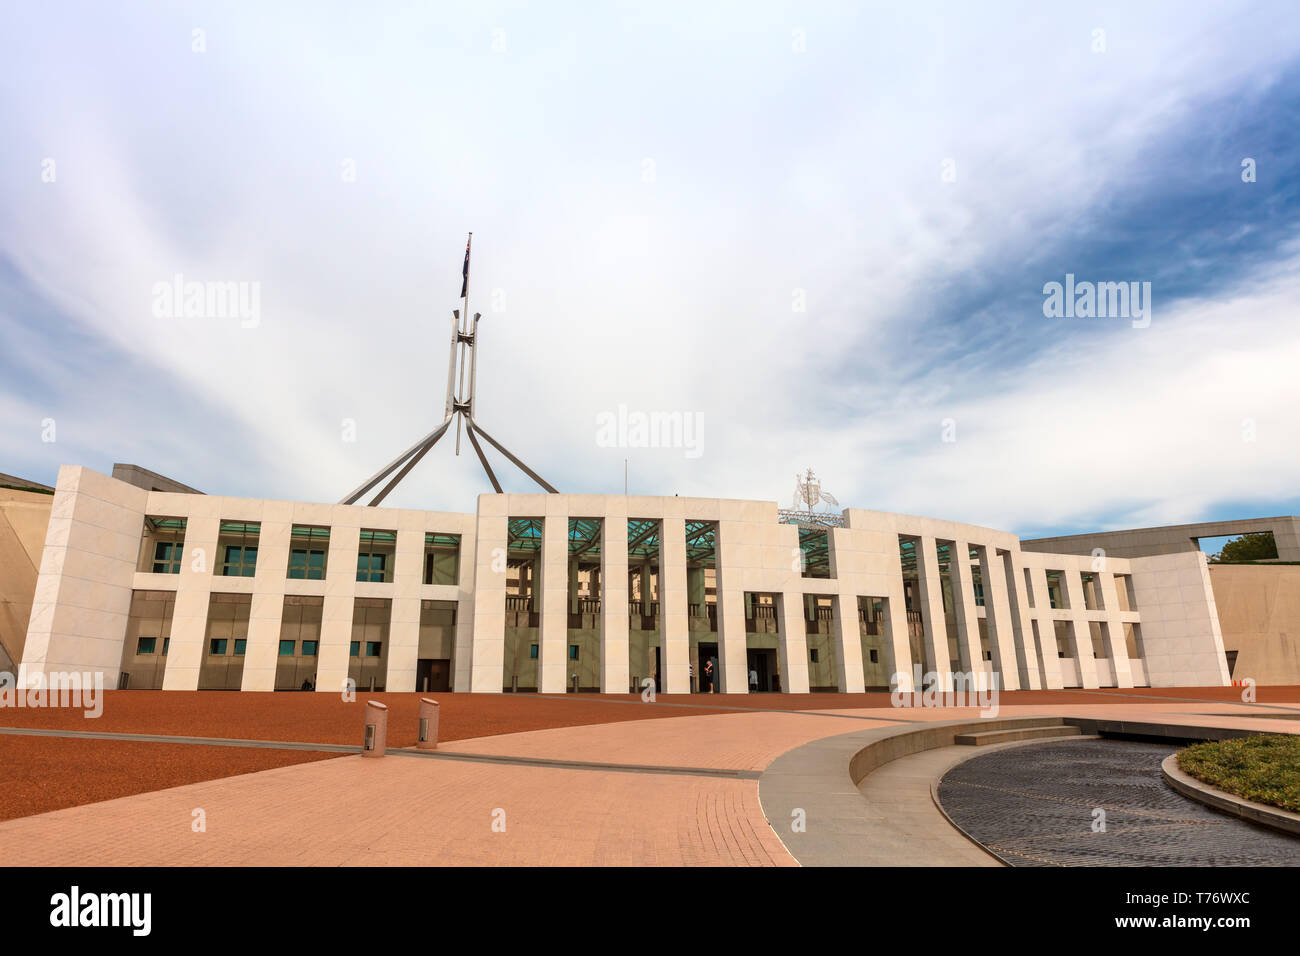 Parliament House, Canberra was opened on 9 May 1988 by Elizabeth II, it cost more than A$1.1 billion to build. Stock Photo